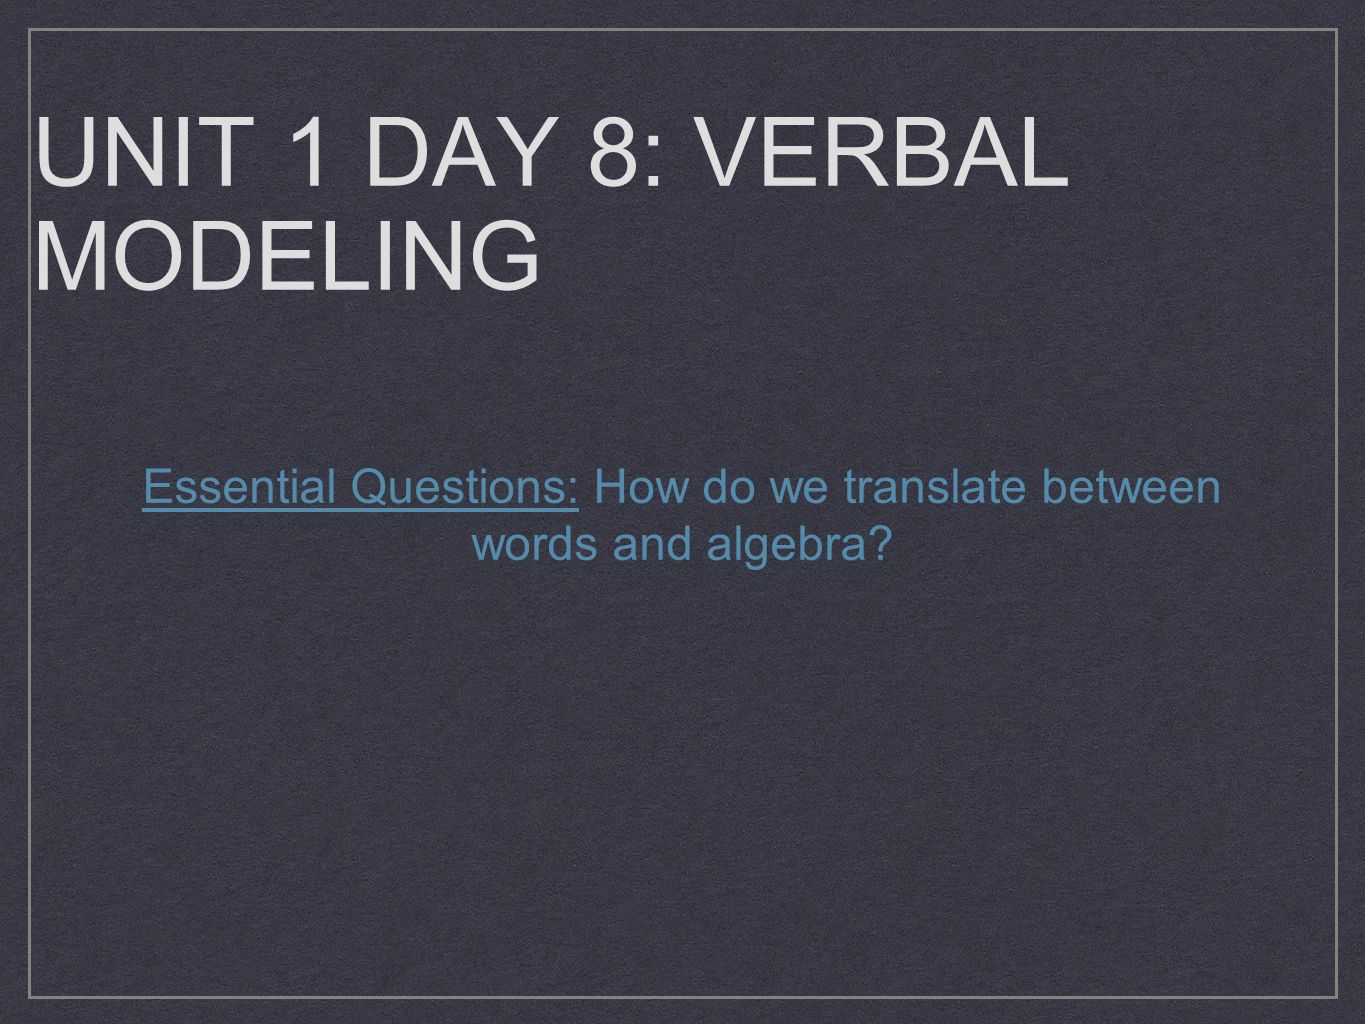 UNIT 1 DAY 8: VERBAL MODELING Essential Questions: How do we translate between words and algebra?